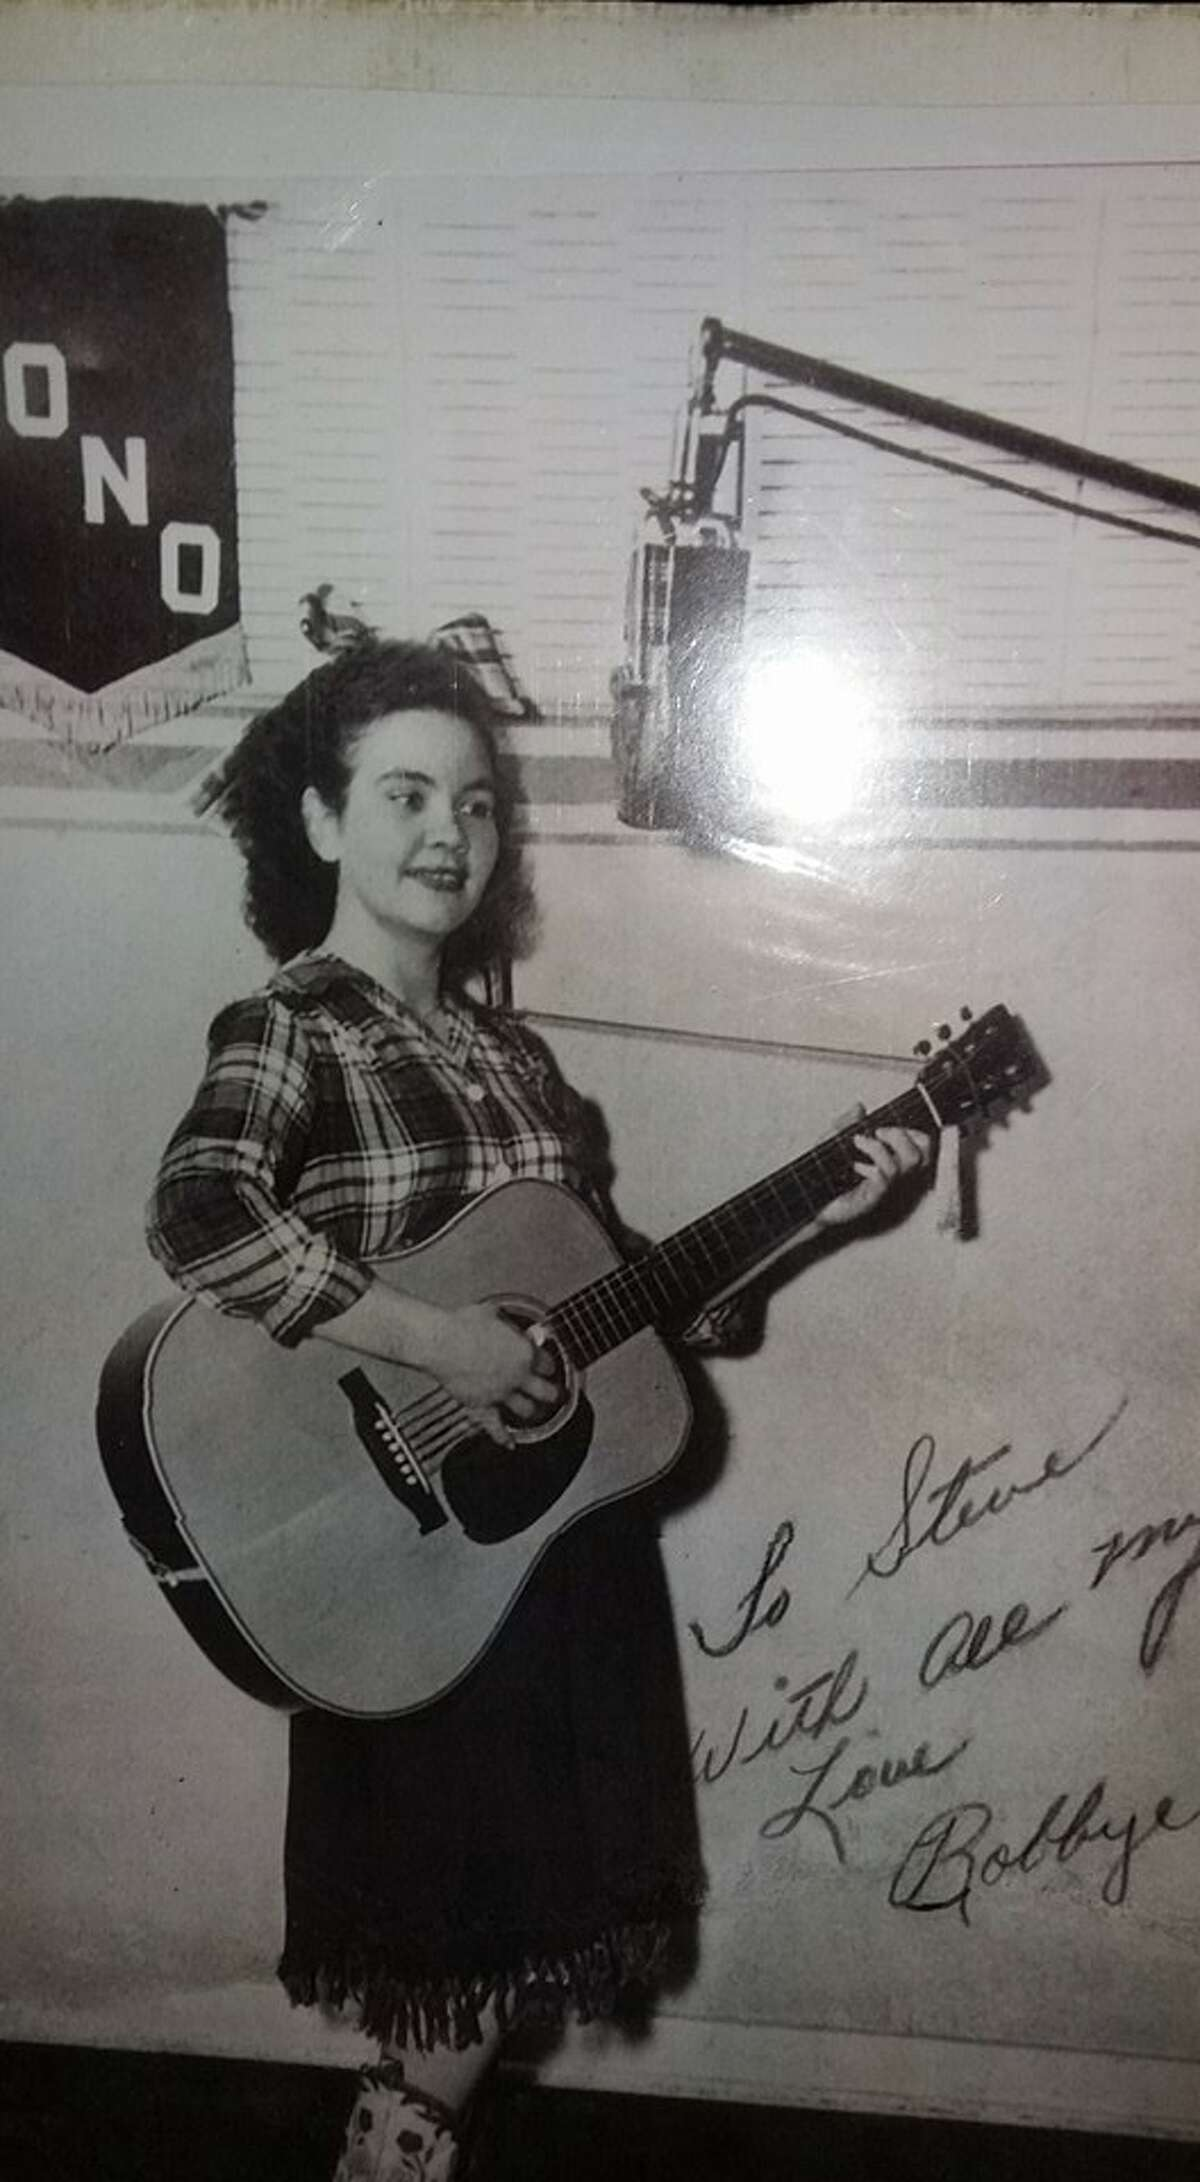 """Bobbye Jean Mays , a natural performer based in San Antonio, died Jan. 4 at 85. She and brother Jerry Dell performed as The O'Dells from the 1940s to the 1960s. Throughout her younger years, Mays sang regularly, including on a show on KONO-AM, on WOAI's """"Radio Rodeo Gang,"""" and with Red River Dave McEnery, who pioneered an early cowboy radio show.More: Mays was a born entertainer"""